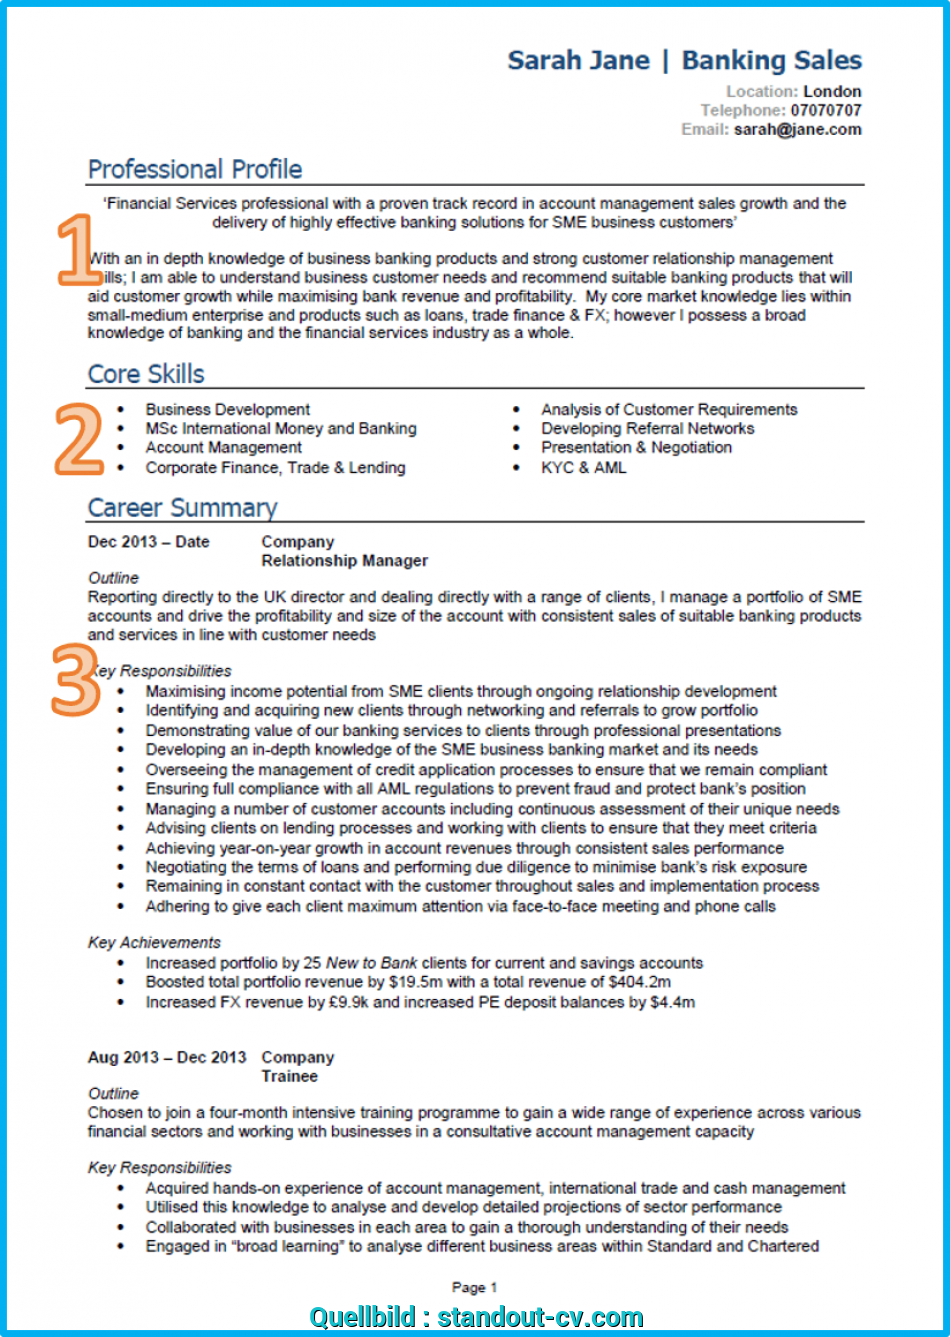 Ausgezeichnet 10 CV Samples With Notes, CV Template, UK [Land Interviews], Cv English Example Great Britain